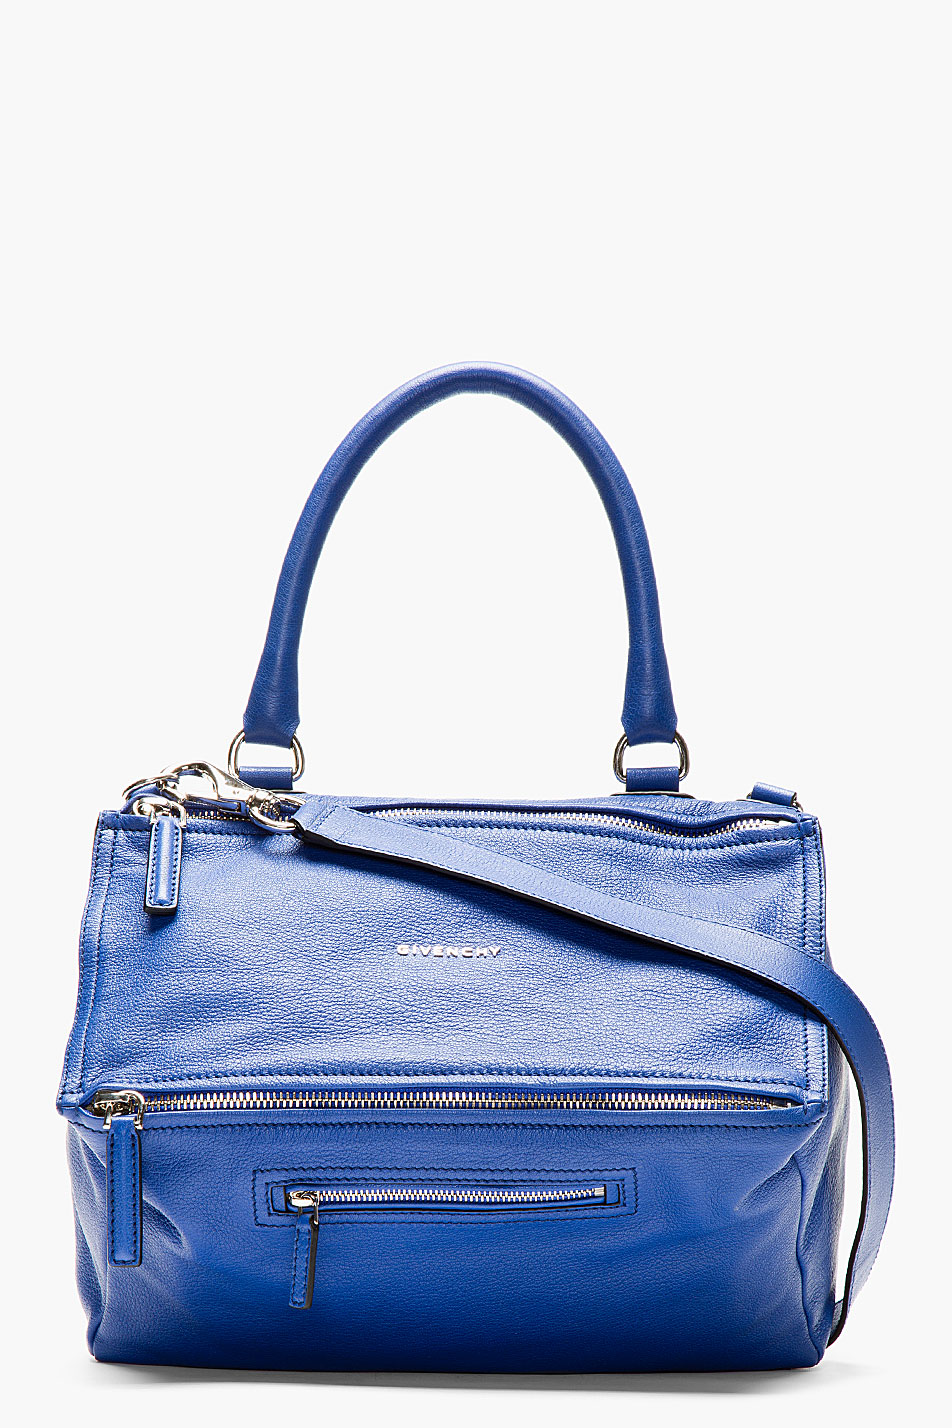 689adafee5 Gallery. Previously sold at  SSENSE · Women s Givenchy Pandora Women s  Ruffled Bags ...